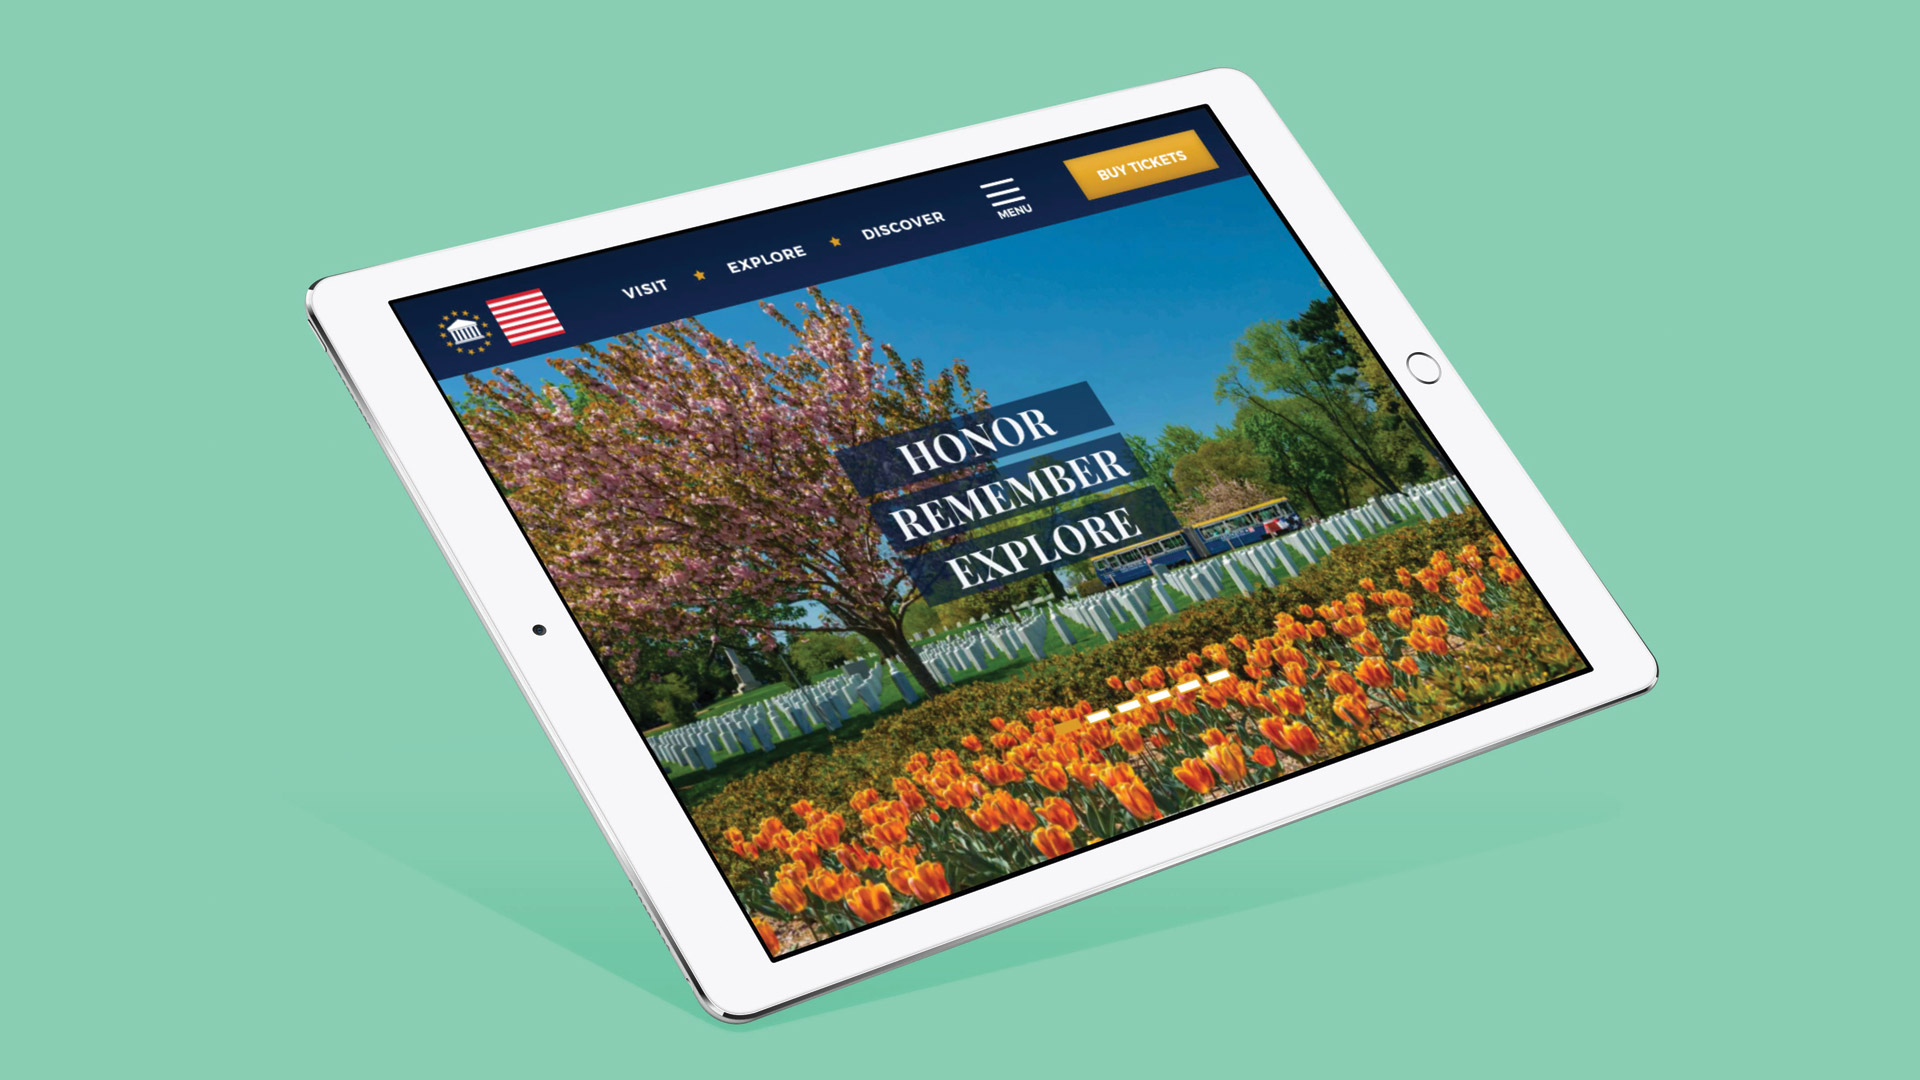 Arlington National Cemetery website view on tablet